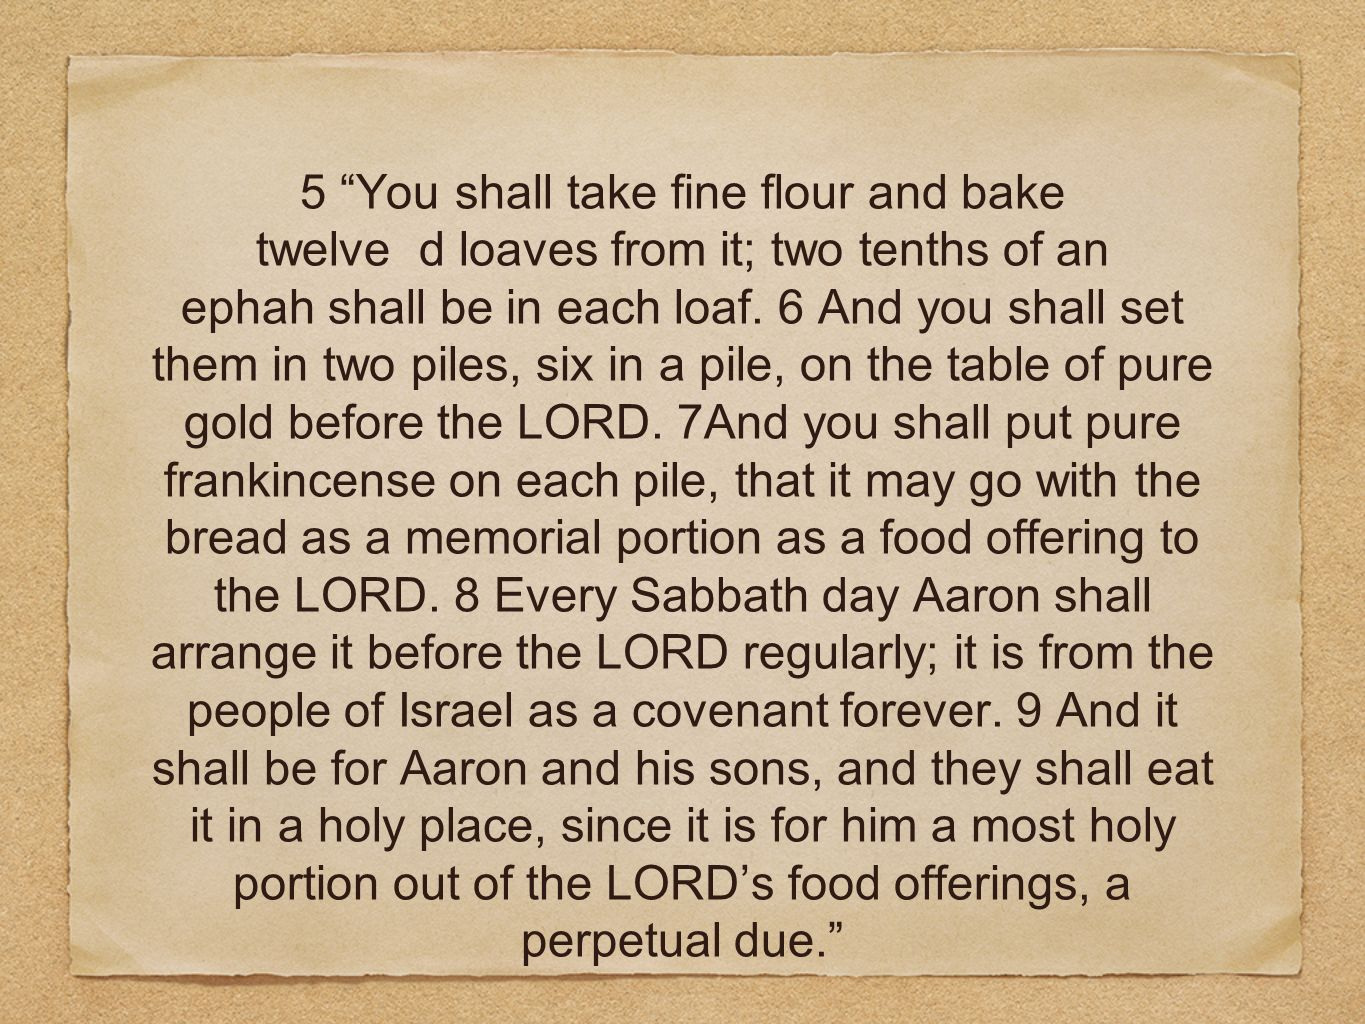 5 You shall take fine flour and bake twelve d loaves from it; two tenths of an ephah shall be in each loaf. 6 And you shall set them in two piles, six